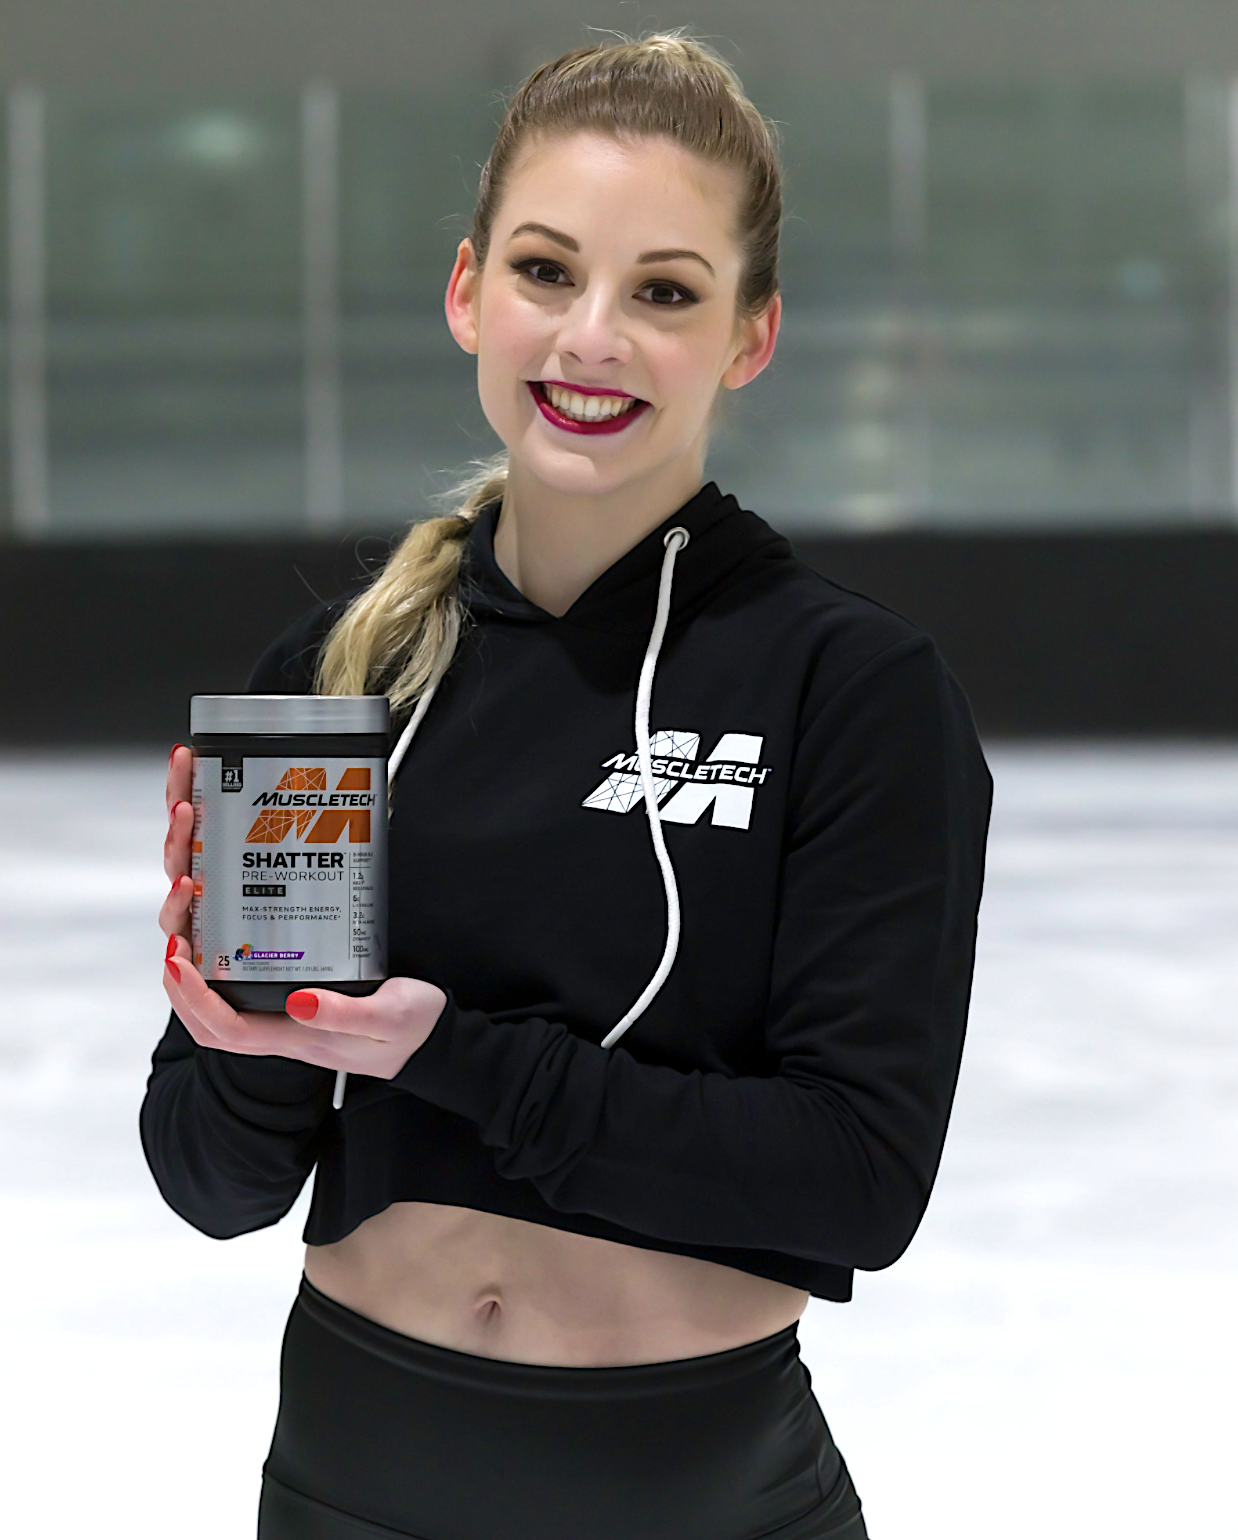 MuscleTech Announces Partnership With American Figure Skater Gracie Gold